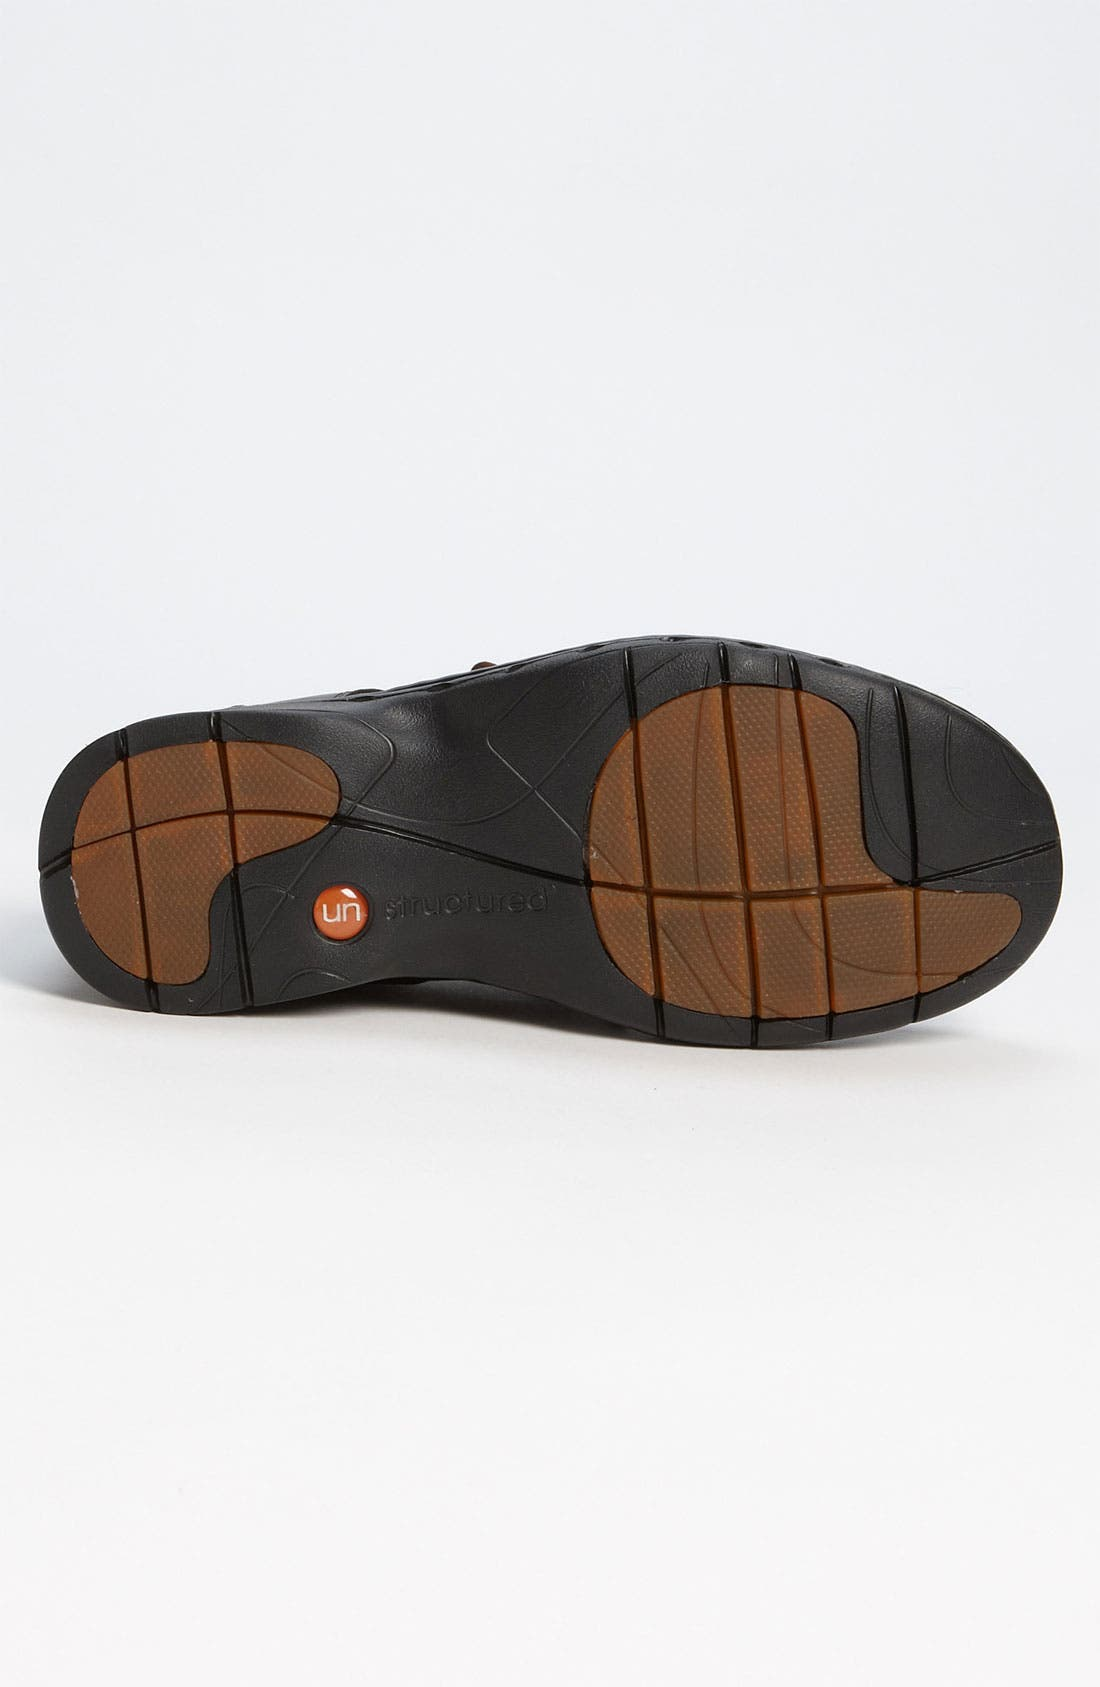 'Un Ravel' Oxford (Online Only),                             Alternate thumbnail 4, color,                             Brown Leather